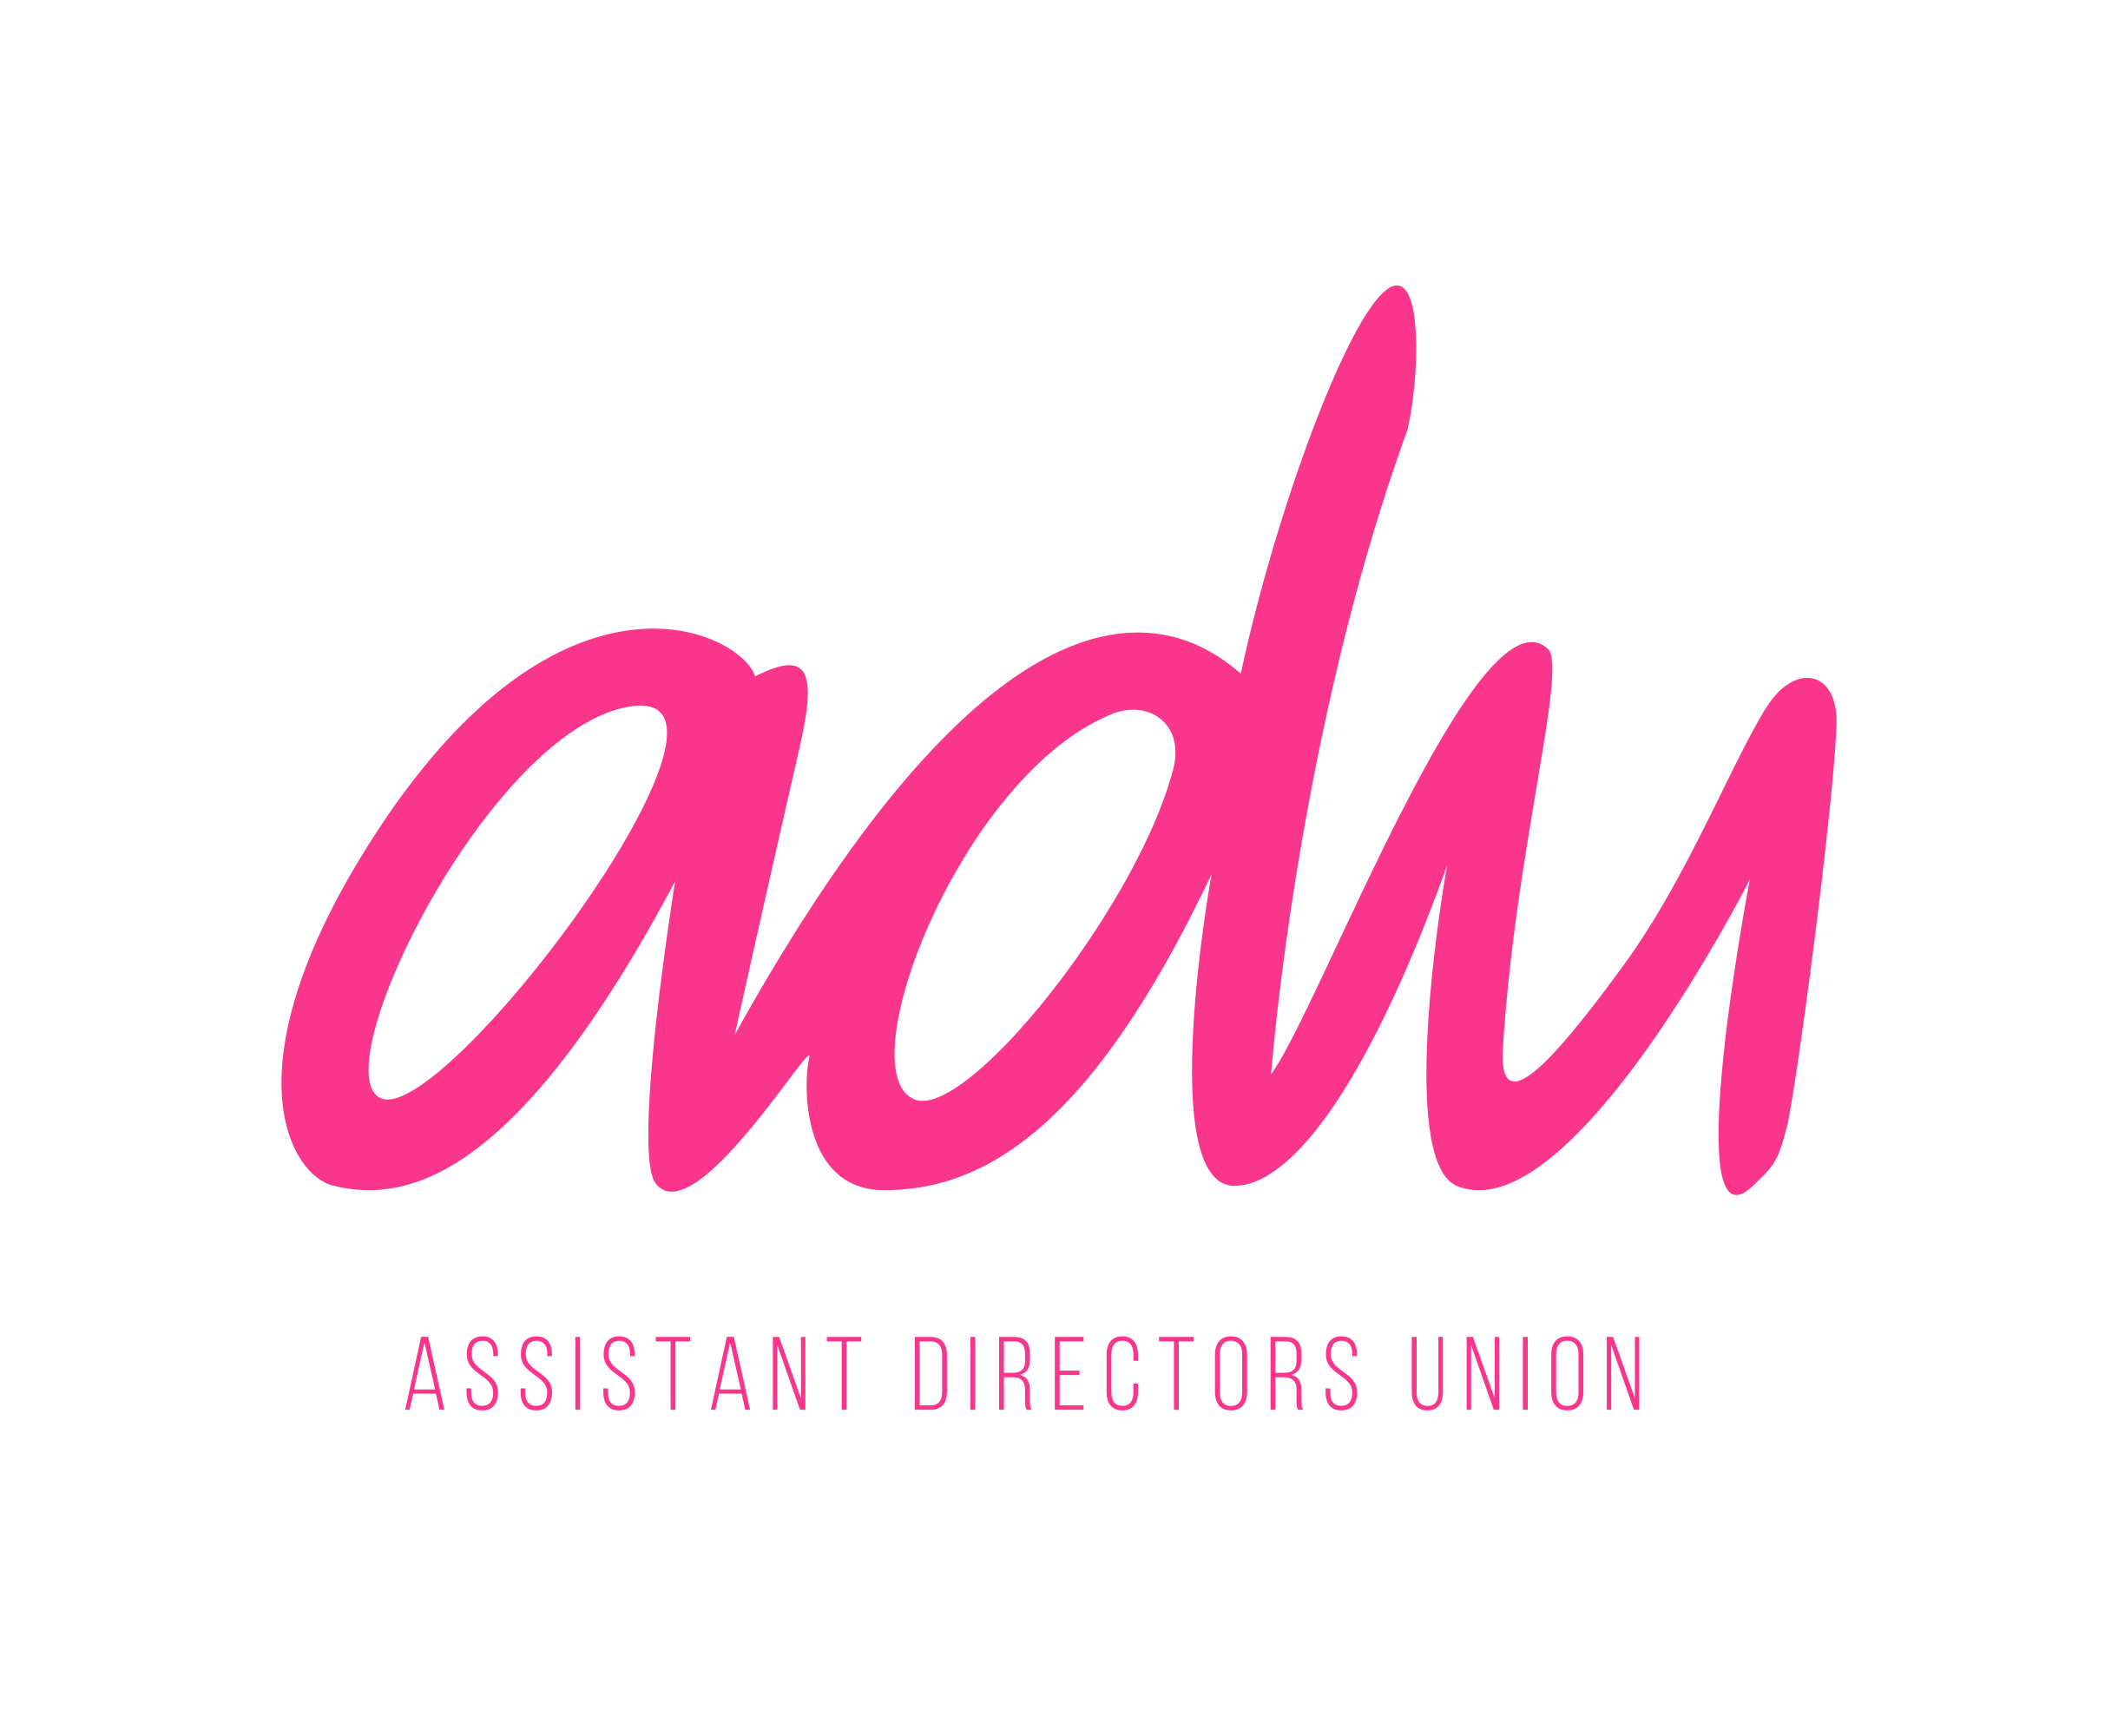 ADU - Assistant Directors Union